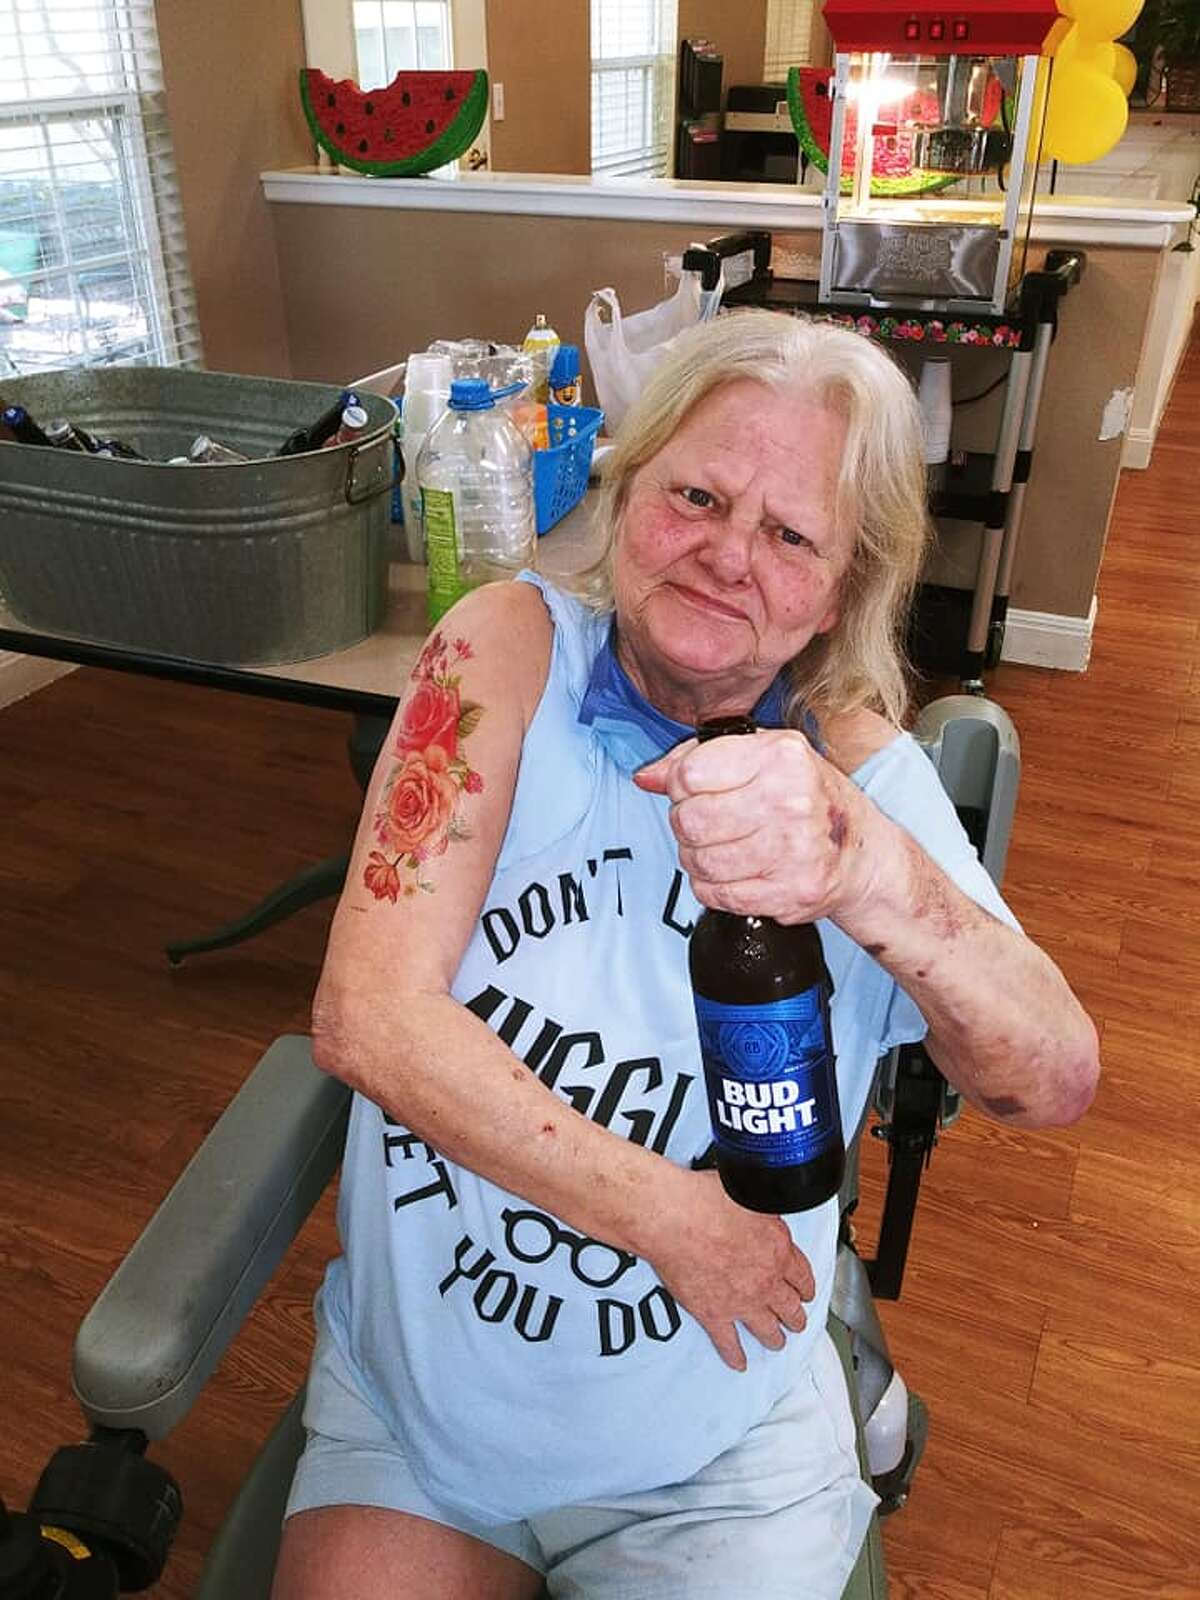 Residents of Wesley House Assisted Living in Hillsboro, TX weren't going to let the pandemic stop them from enjoying a happy hour full of drinks and tattoos!